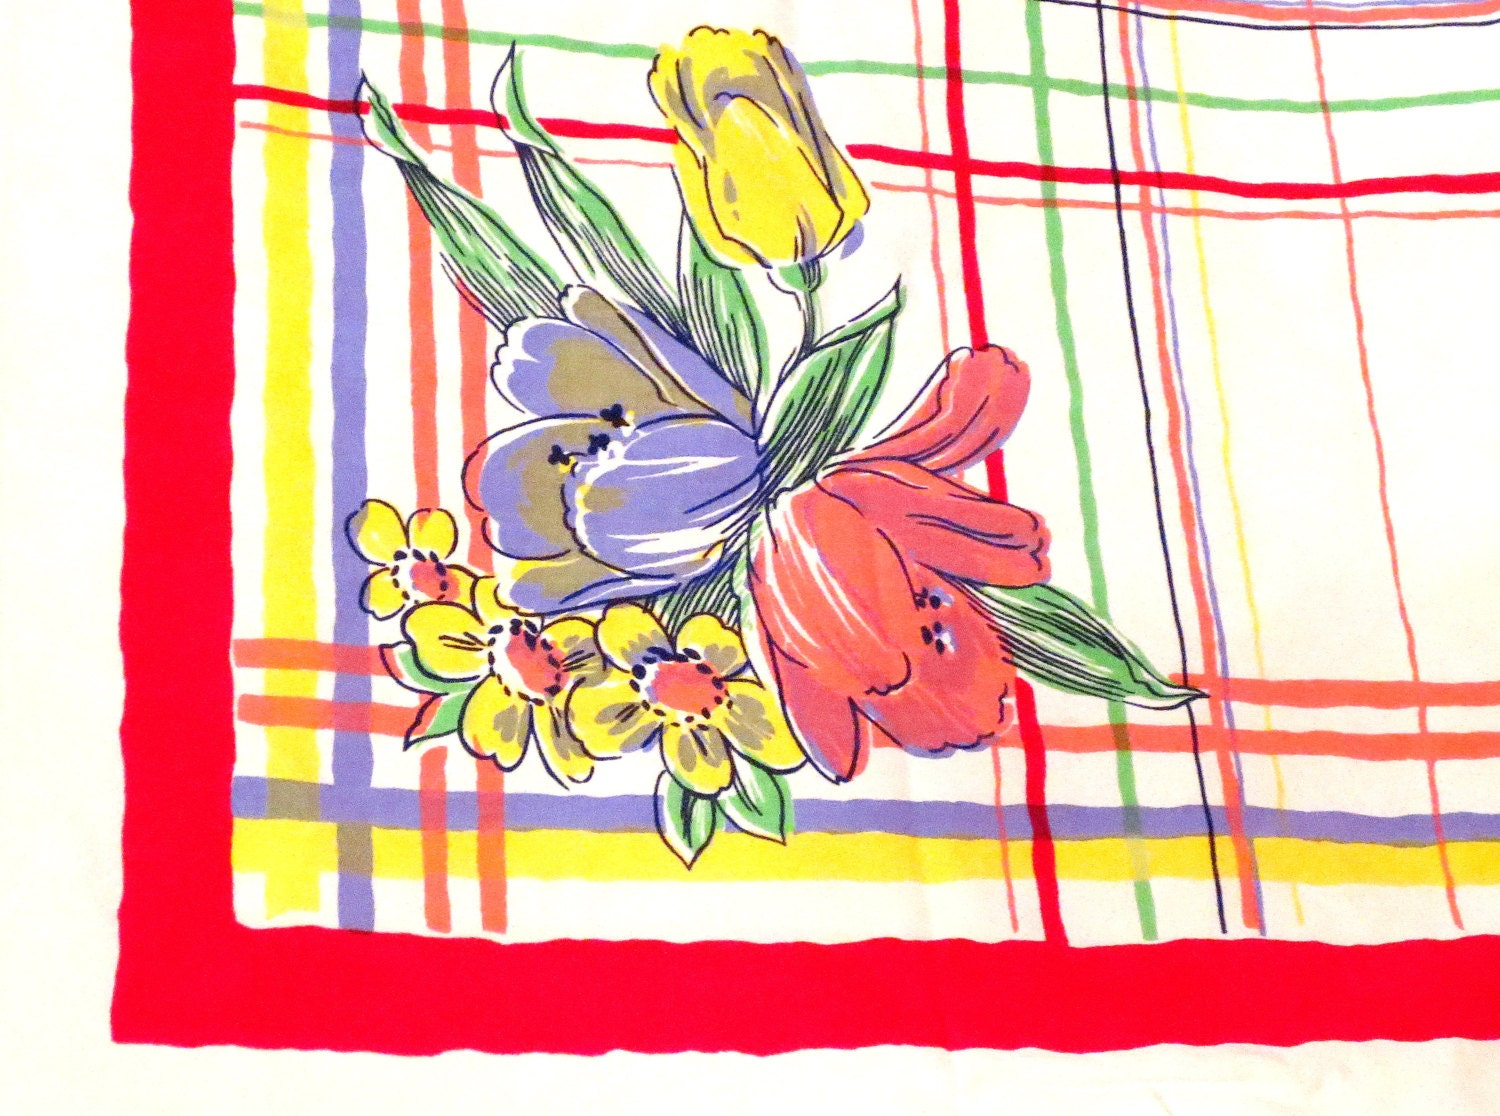 Vintage Tablecloth Square Red Plaid Floral White Green Yellow Blue Flowers Lilies White Edge - 50 x 50in